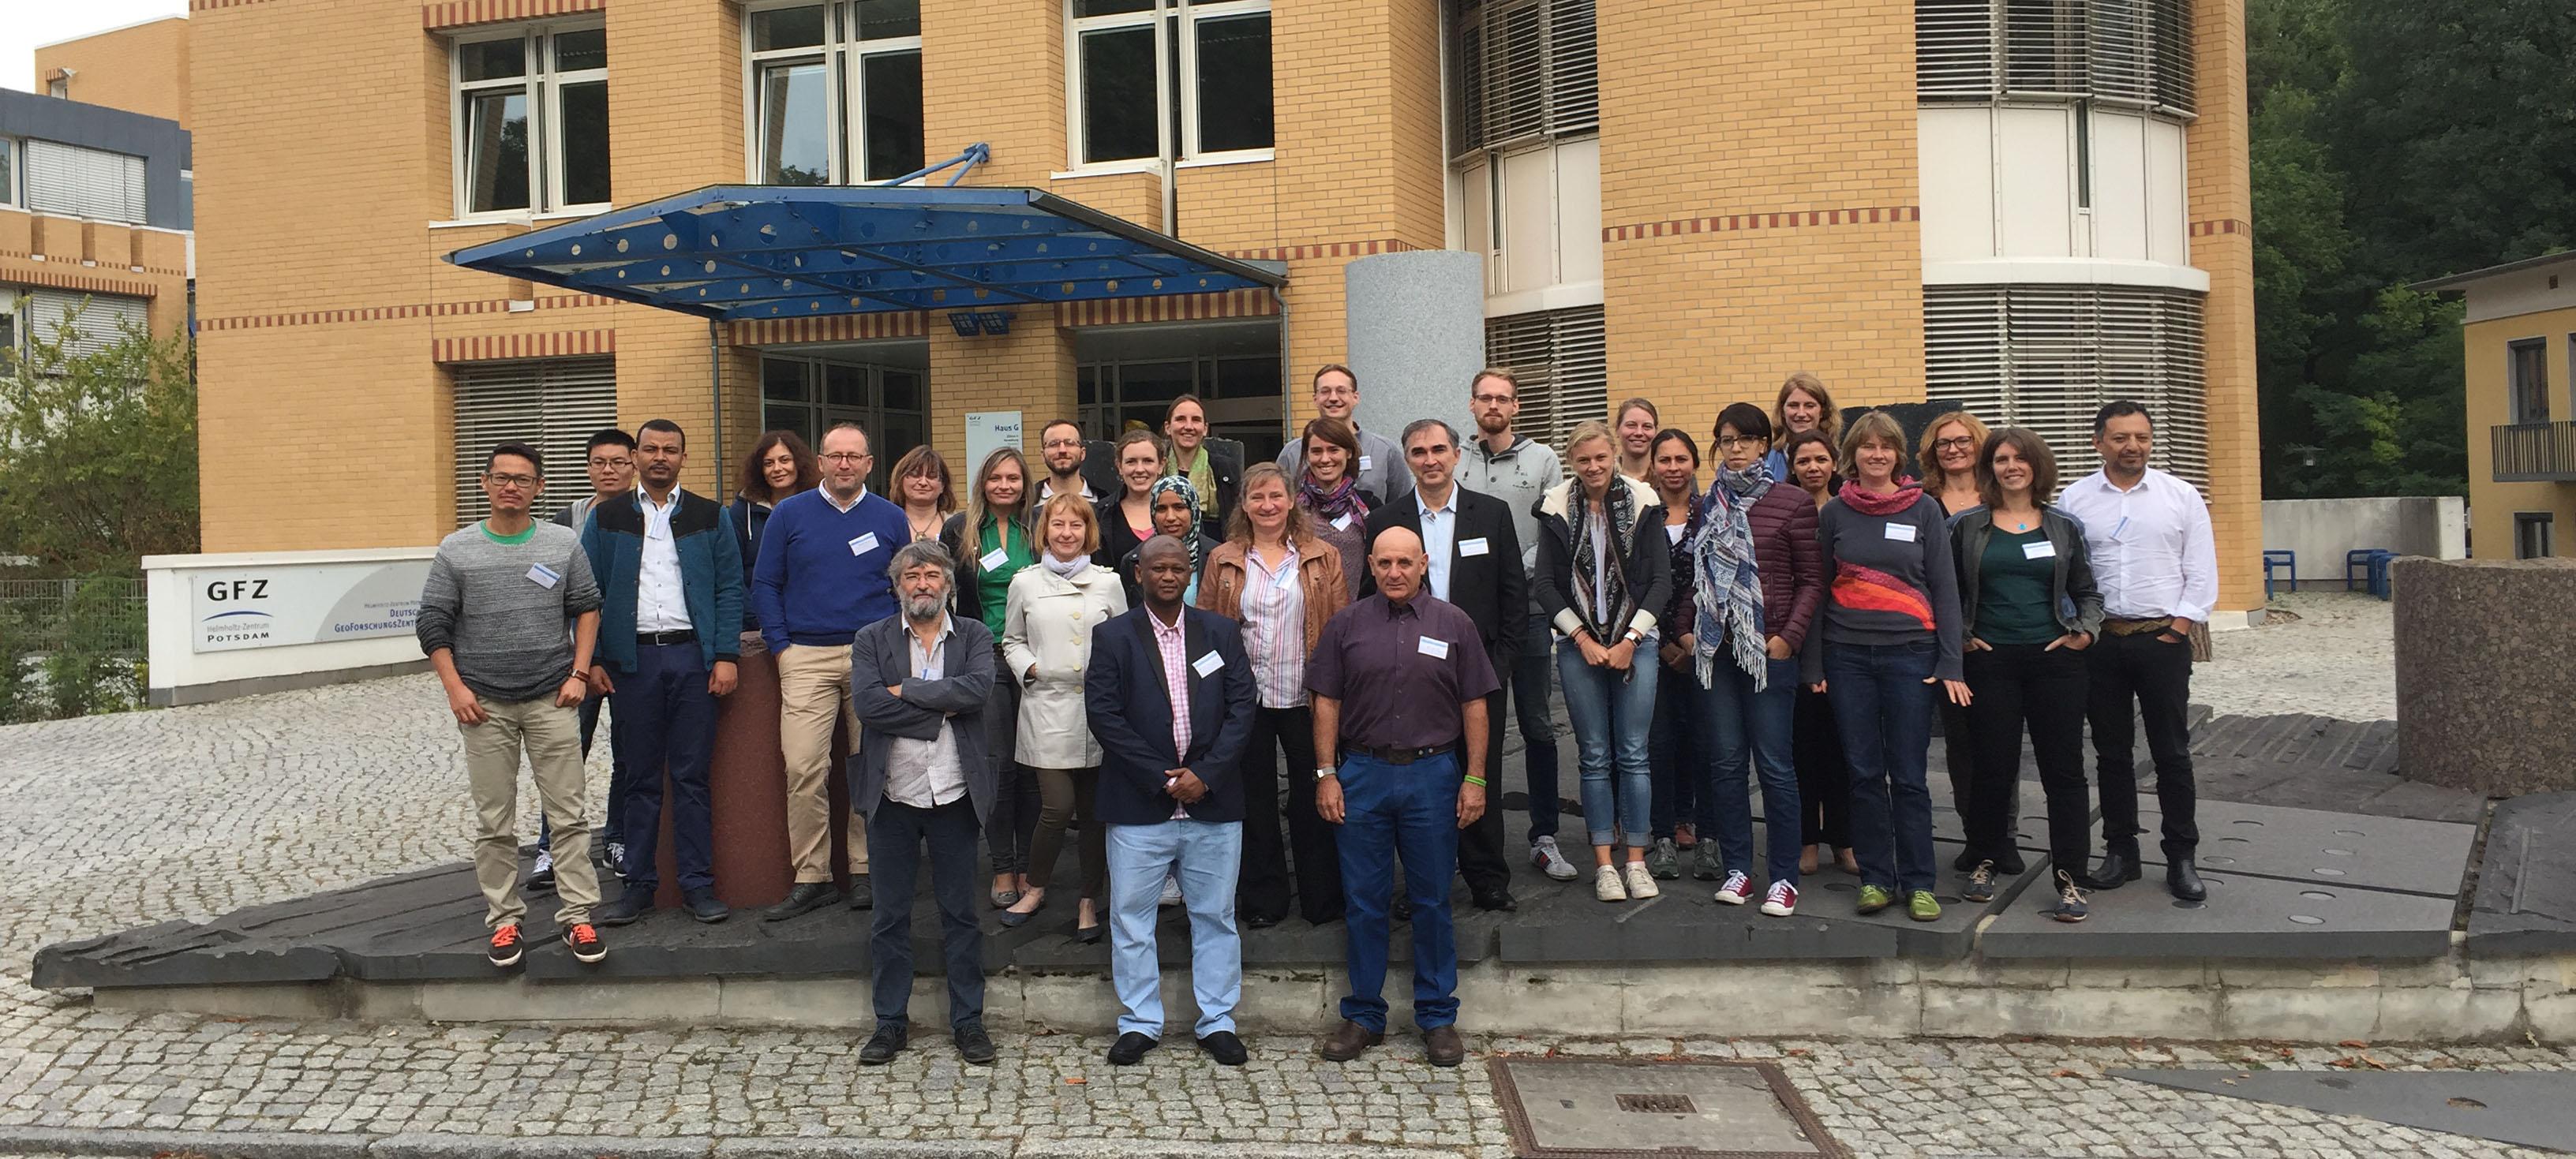 EUFAR Soil Applications Workshop - Group Photo - Sept 2016